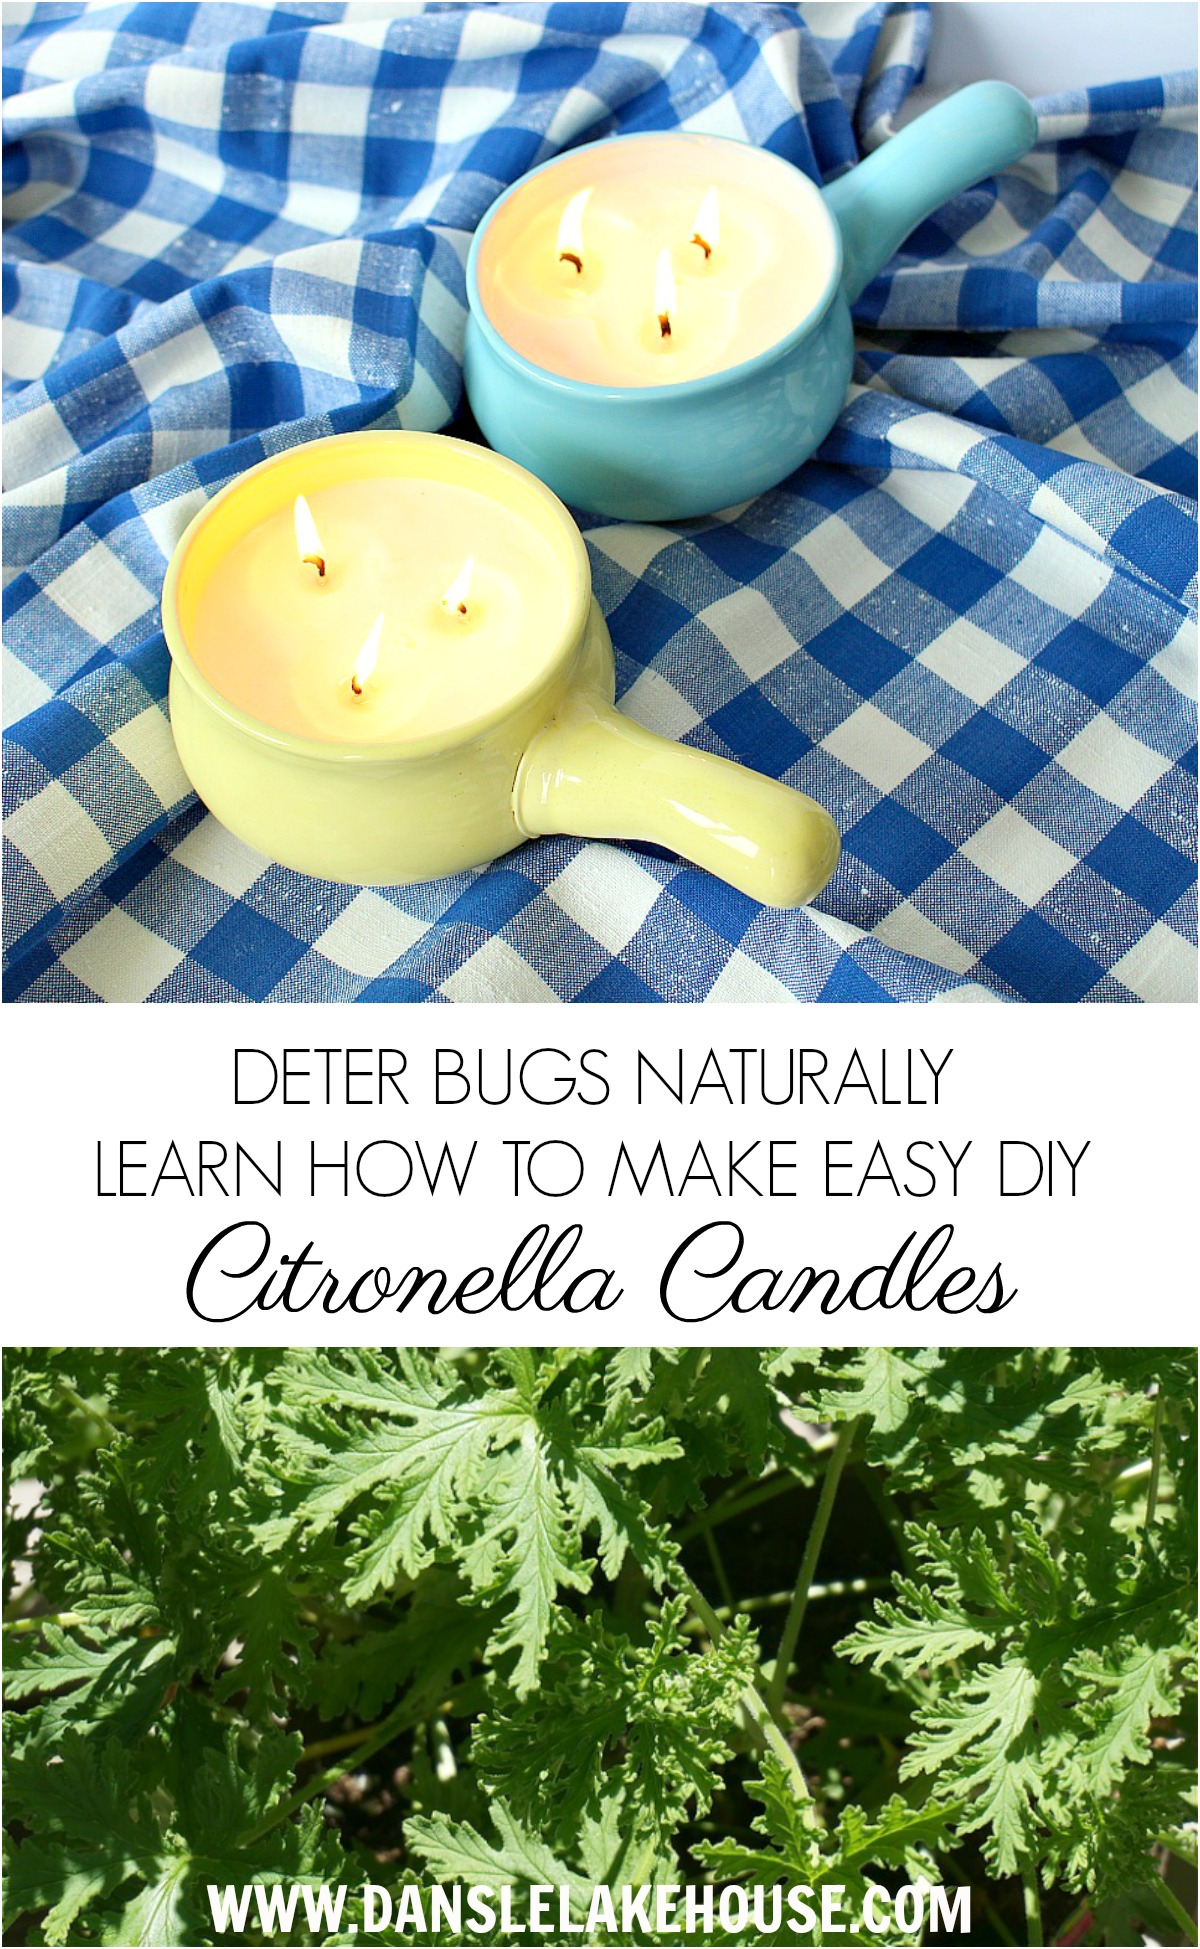 Learn How to Make Your Own DIY Citronella Candles for Summer | Get Rid of Bugs Naturally | Essential Oil Recipes and Crafts | Dans le Lakehouse